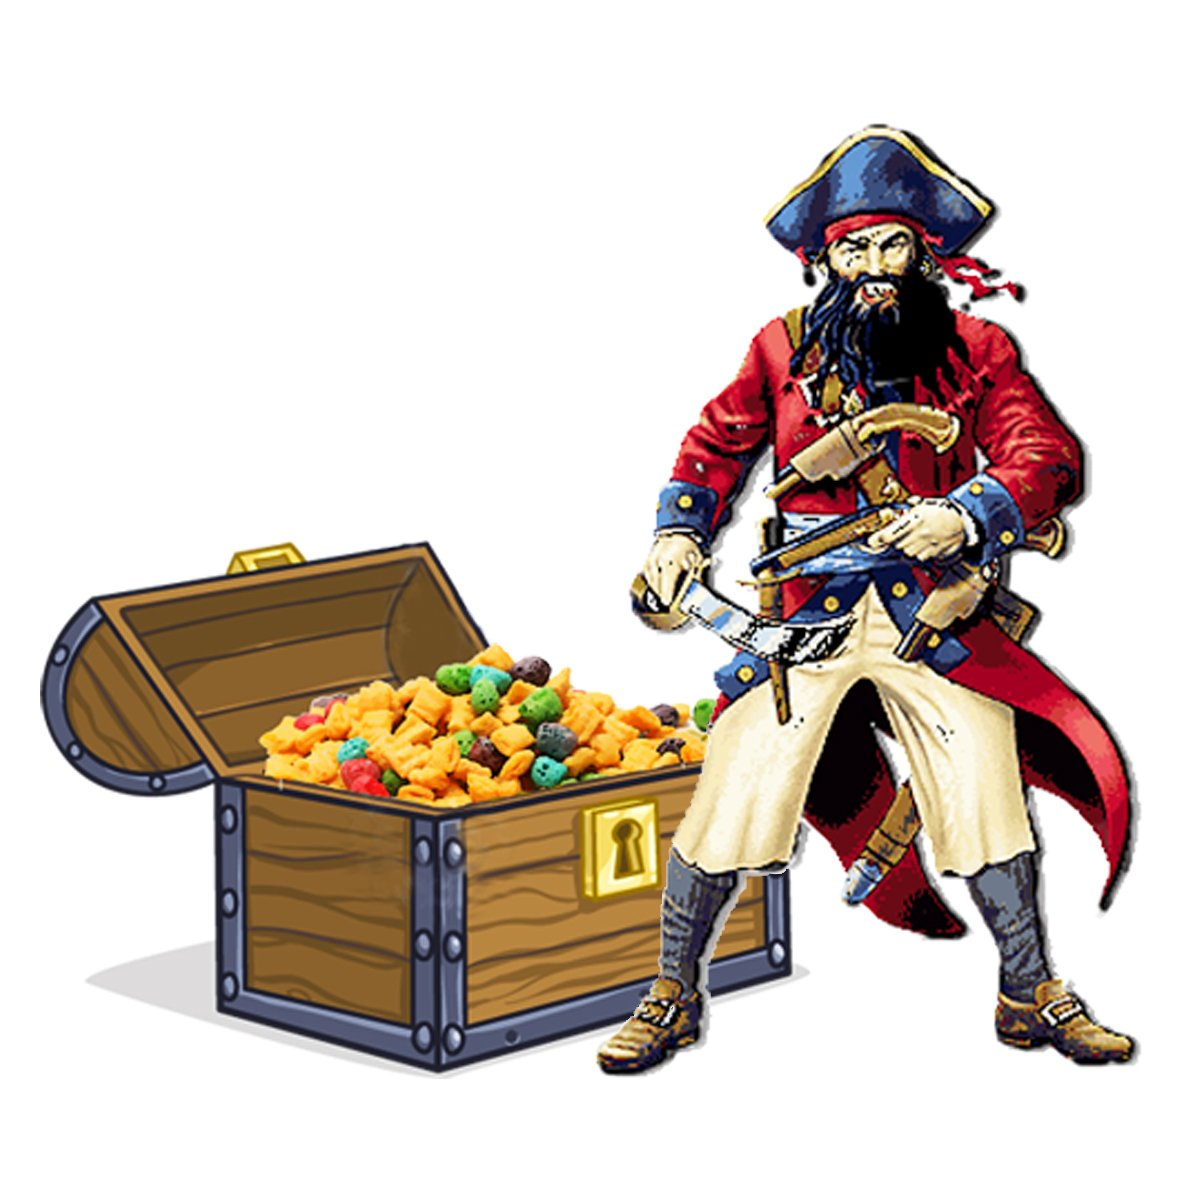 Capt'n Berry High VG